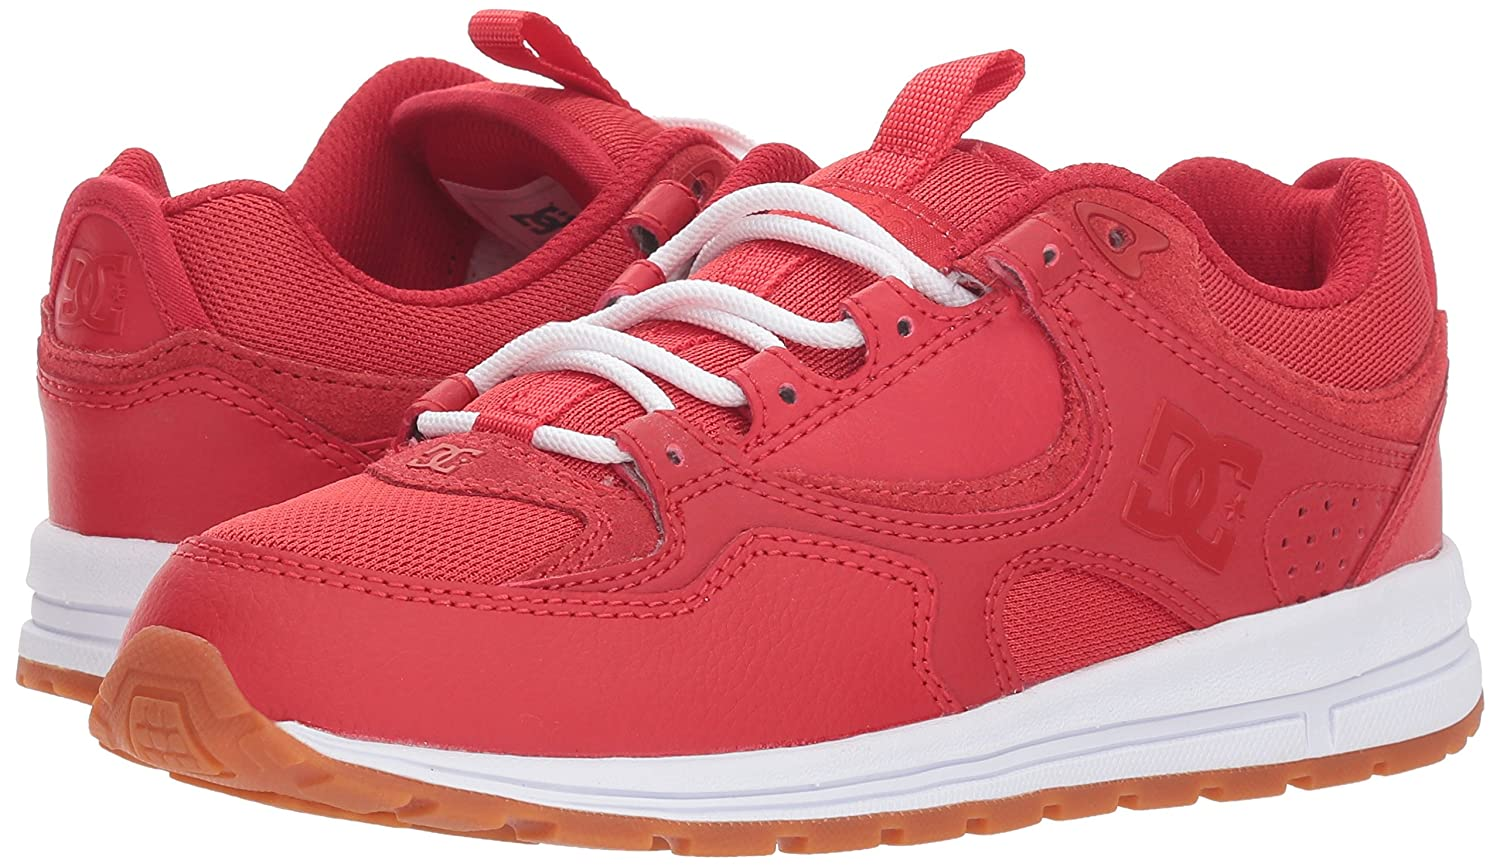 Man/Woman DC Women's Kalis LITE Skateboarding Shoe, Customer first Full Moderate cost Full first range of specifications 587829